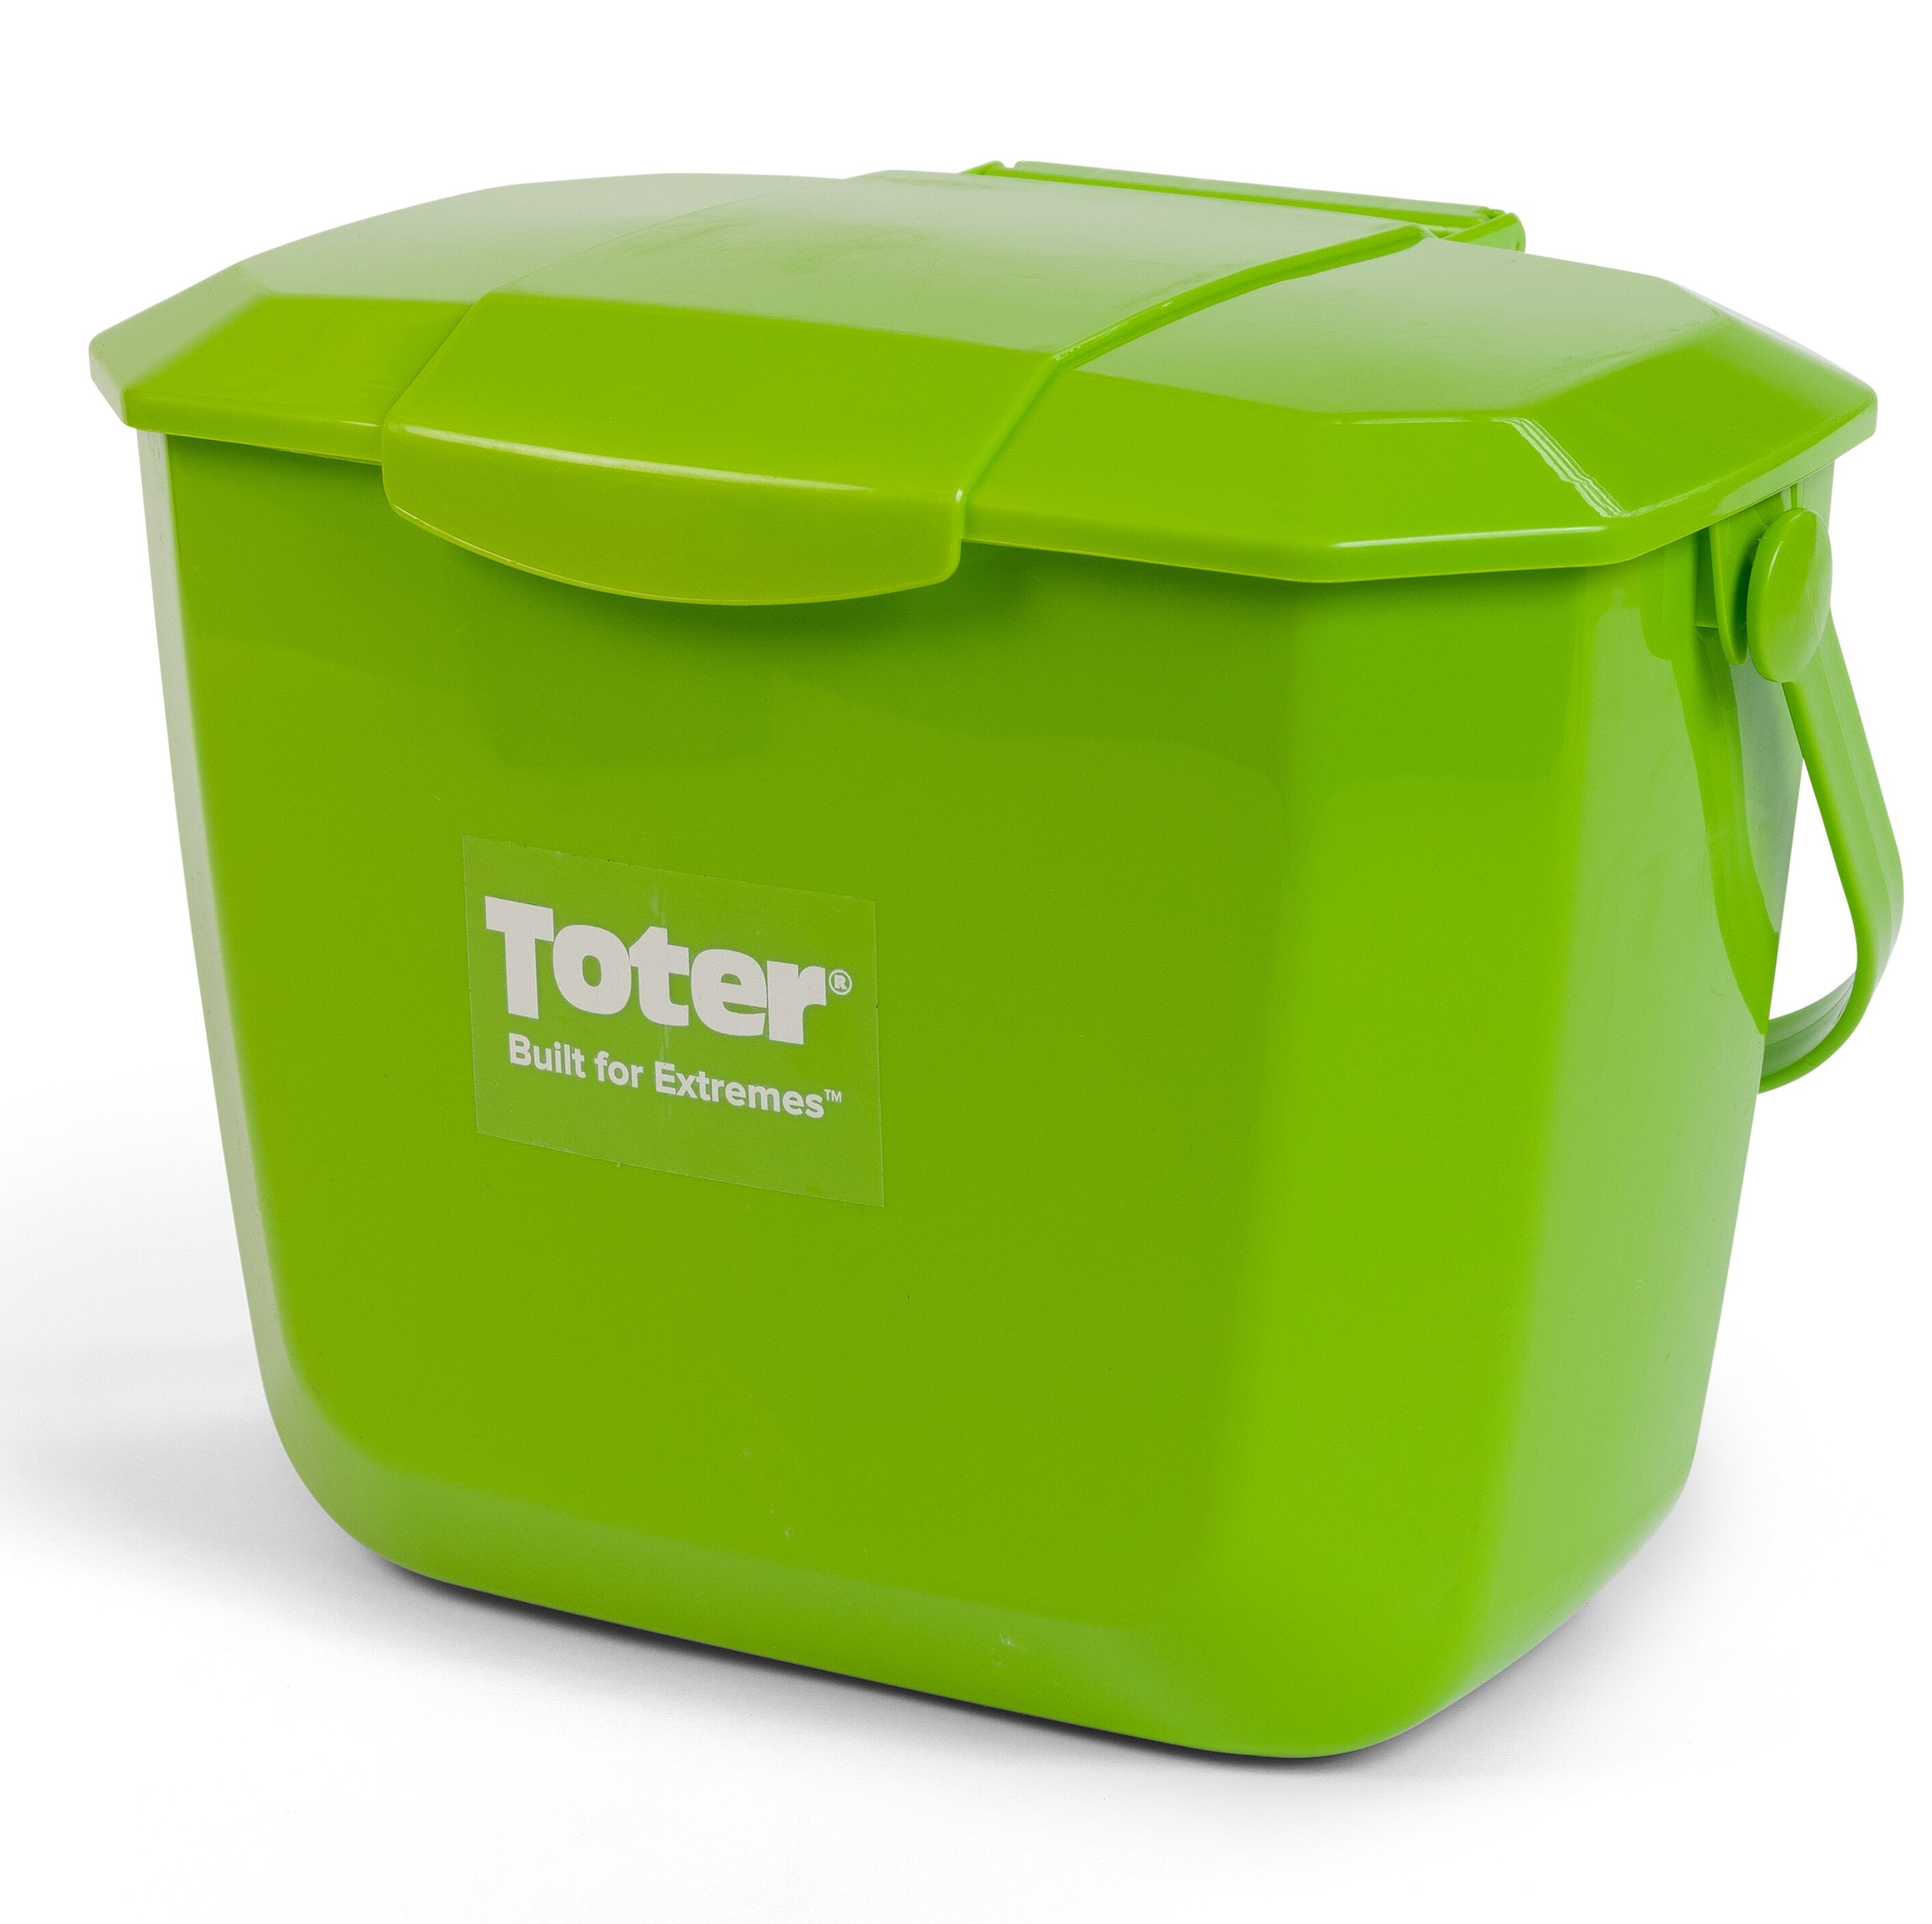 Toter Organics 2 Gallon Manual Lift Recycling Bin Wayfair